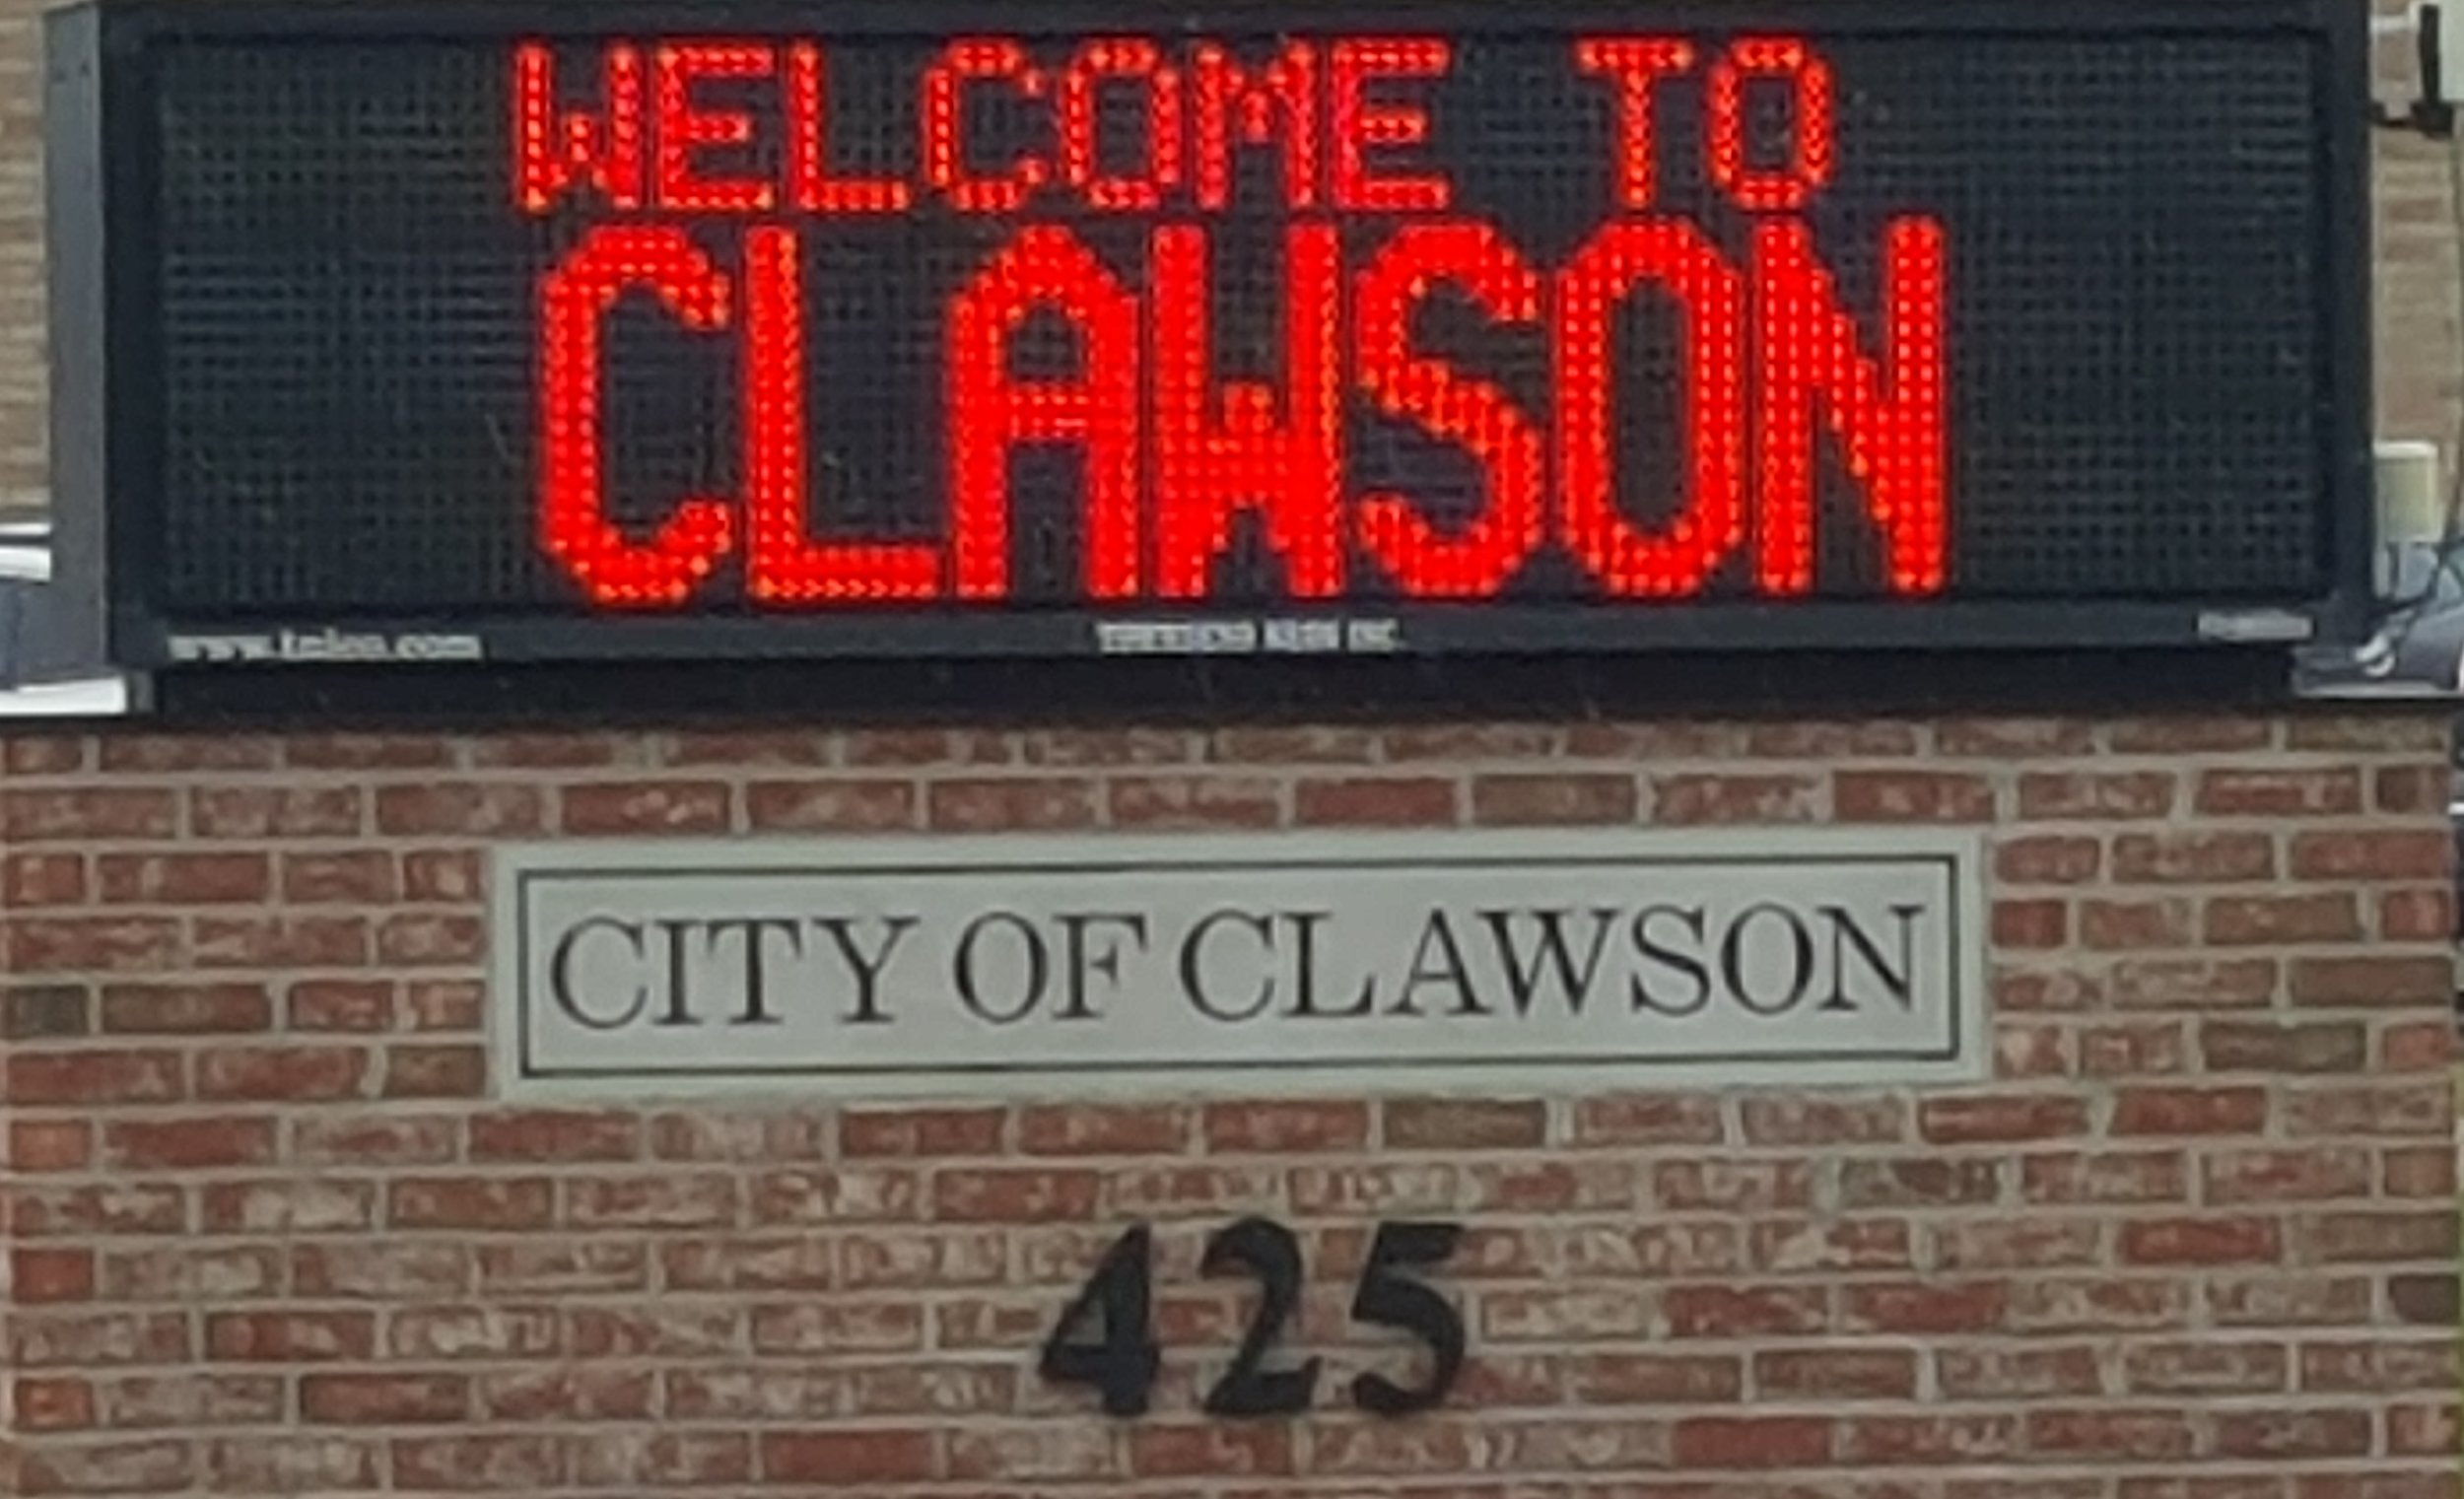 About - Our vision as the Clawson Chamber of Commerce is to be an innovative, trusted and respected business advocate that drives both economic and social growth as well as improvement on behalf of, and in support of, our members and the local community.